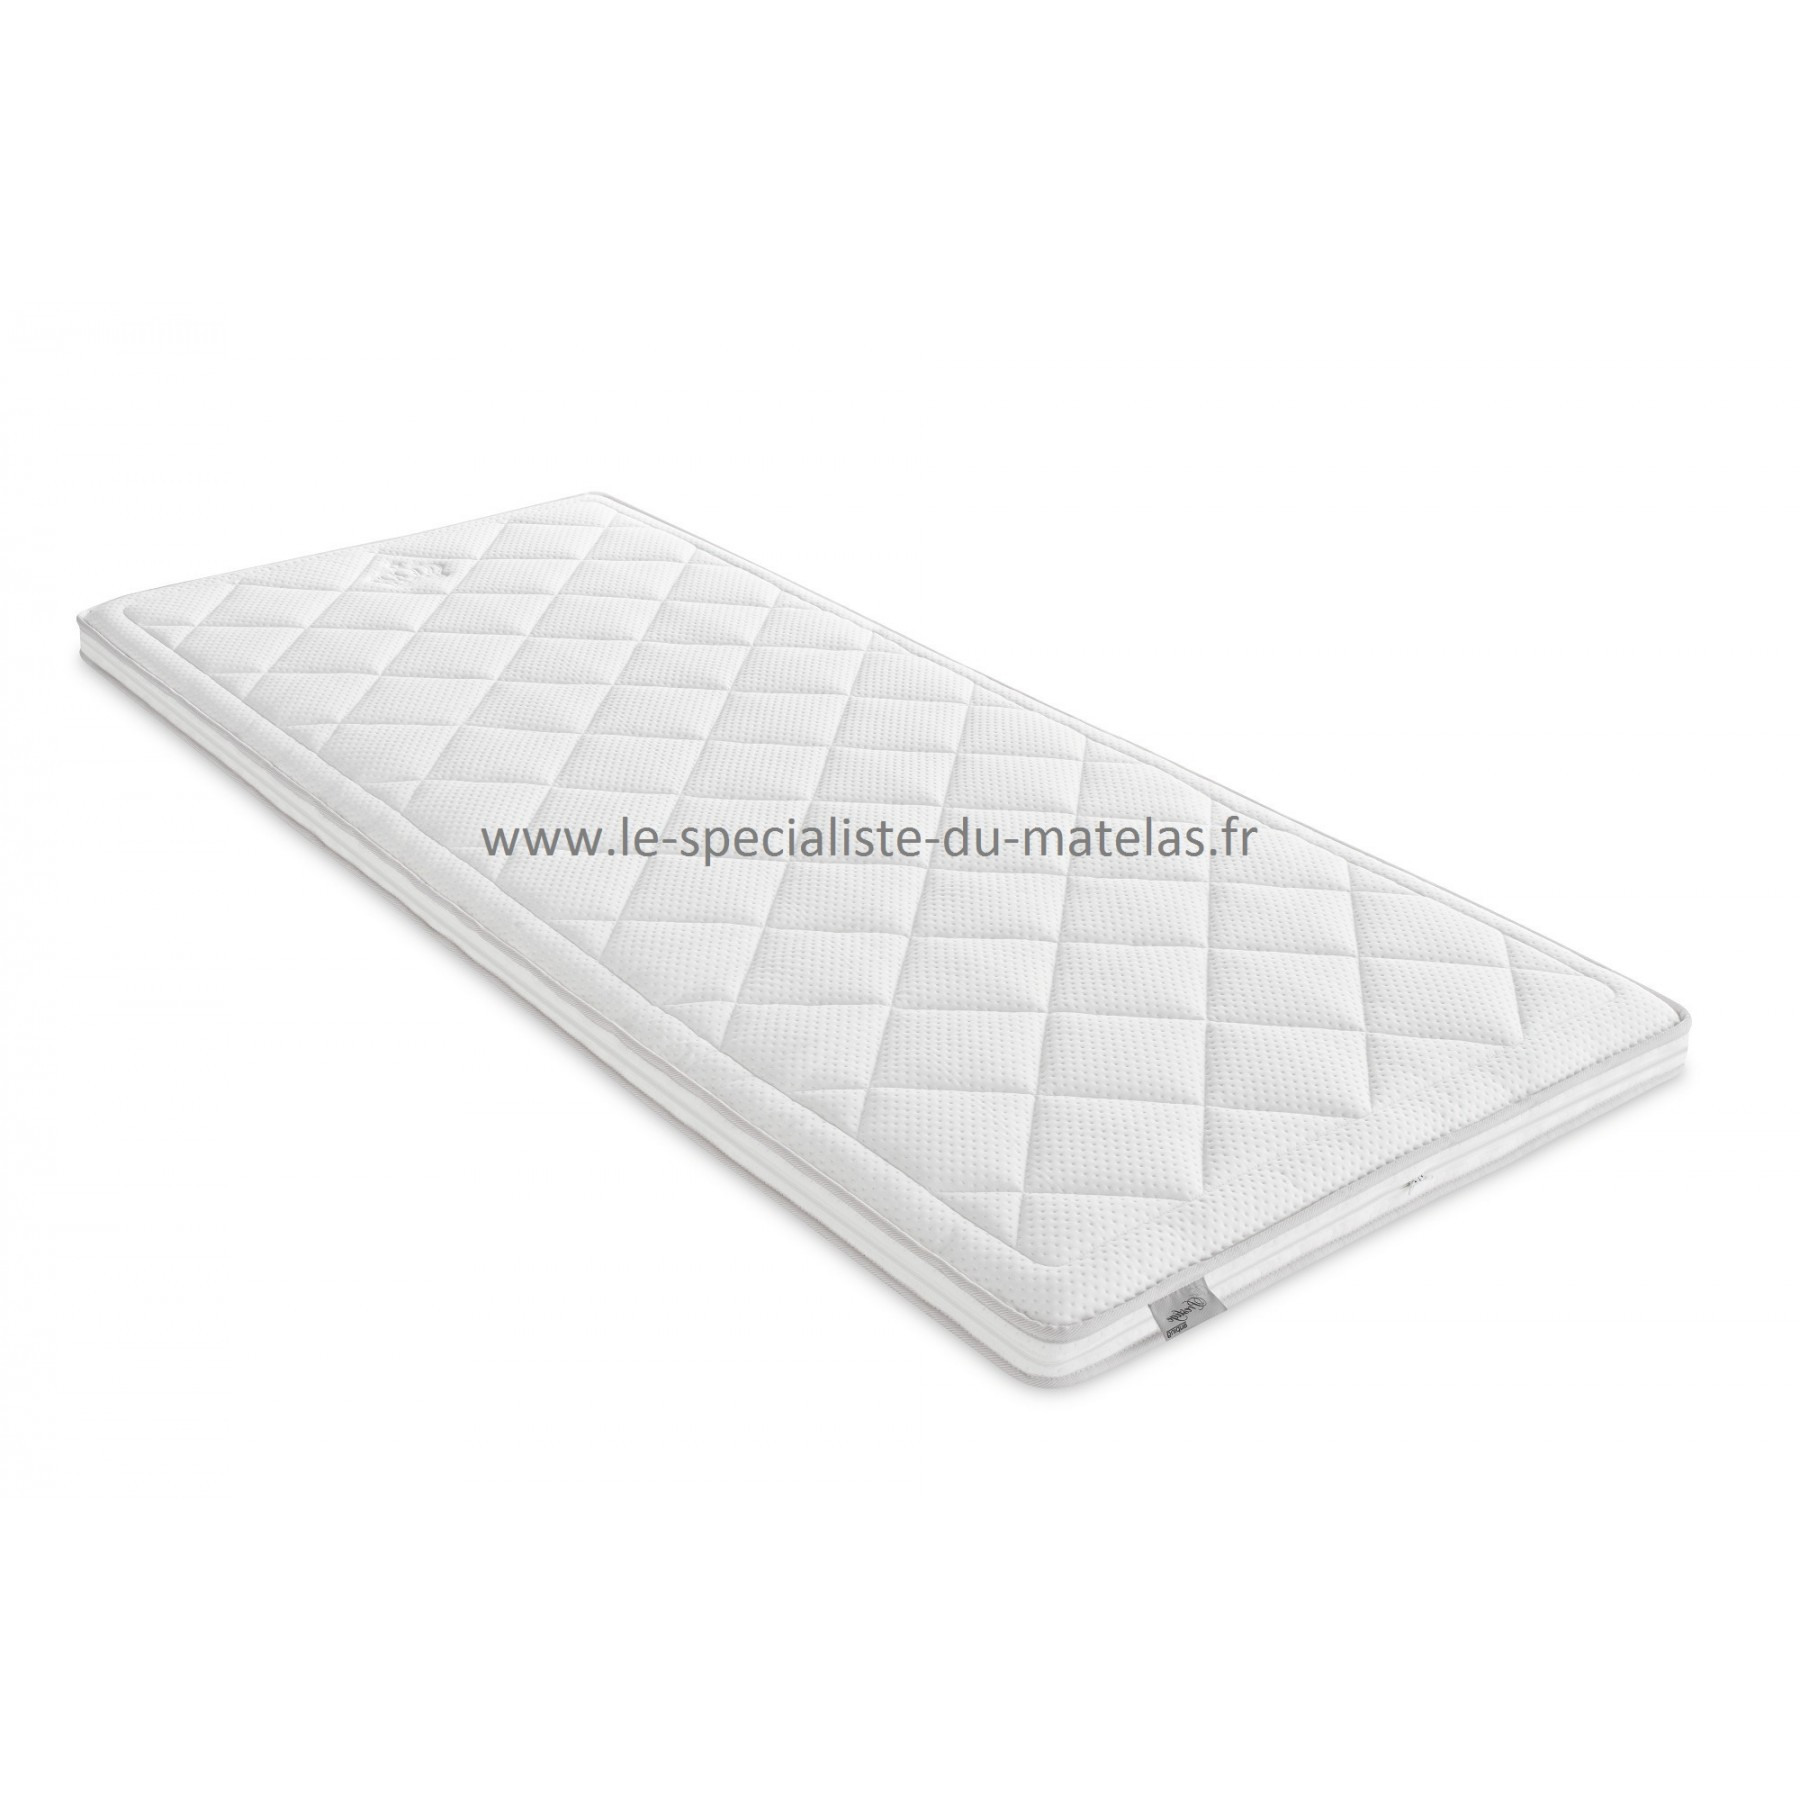 surmatelas memoire de forme tempur matelas memoire de forme tempur my blog matelas m moire de. Black Bedroom Furniture Sets. Home Design Ideas